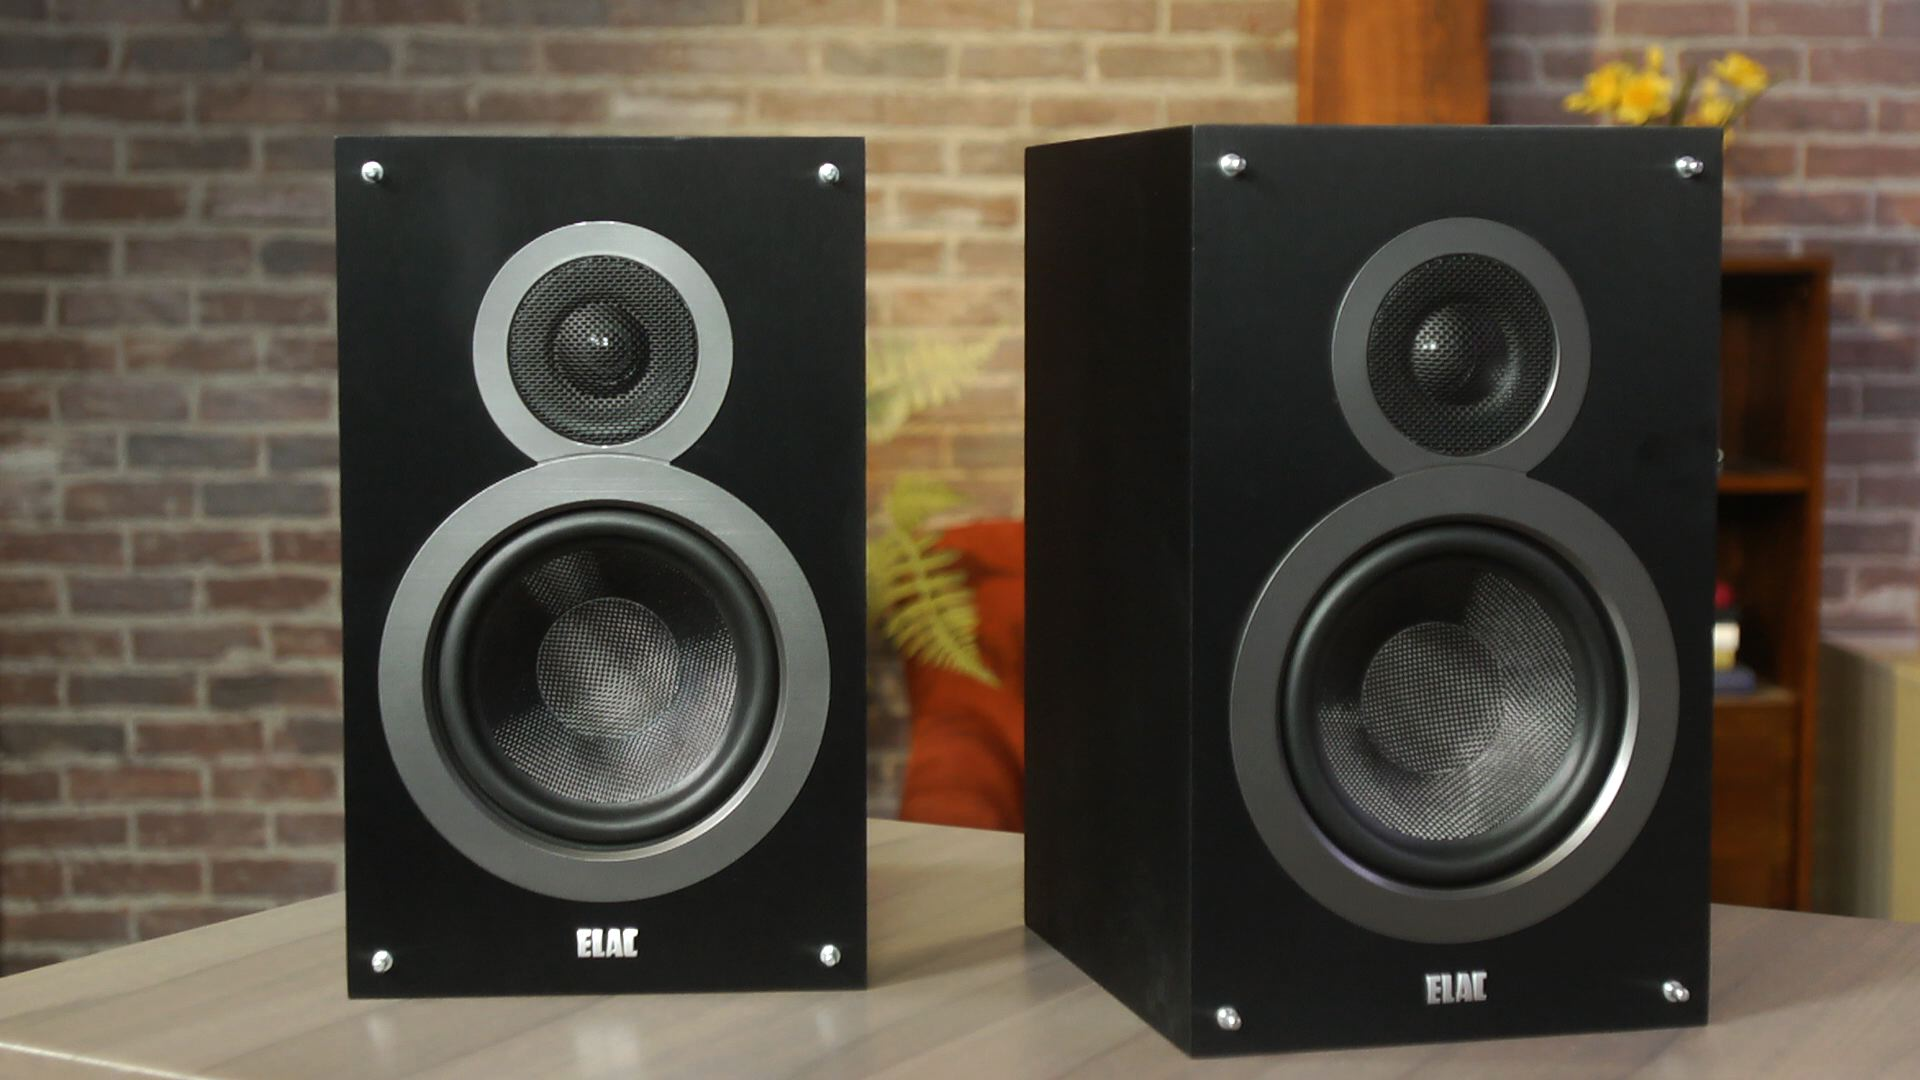 Video: ELAC Debut B6 speakers sound superior